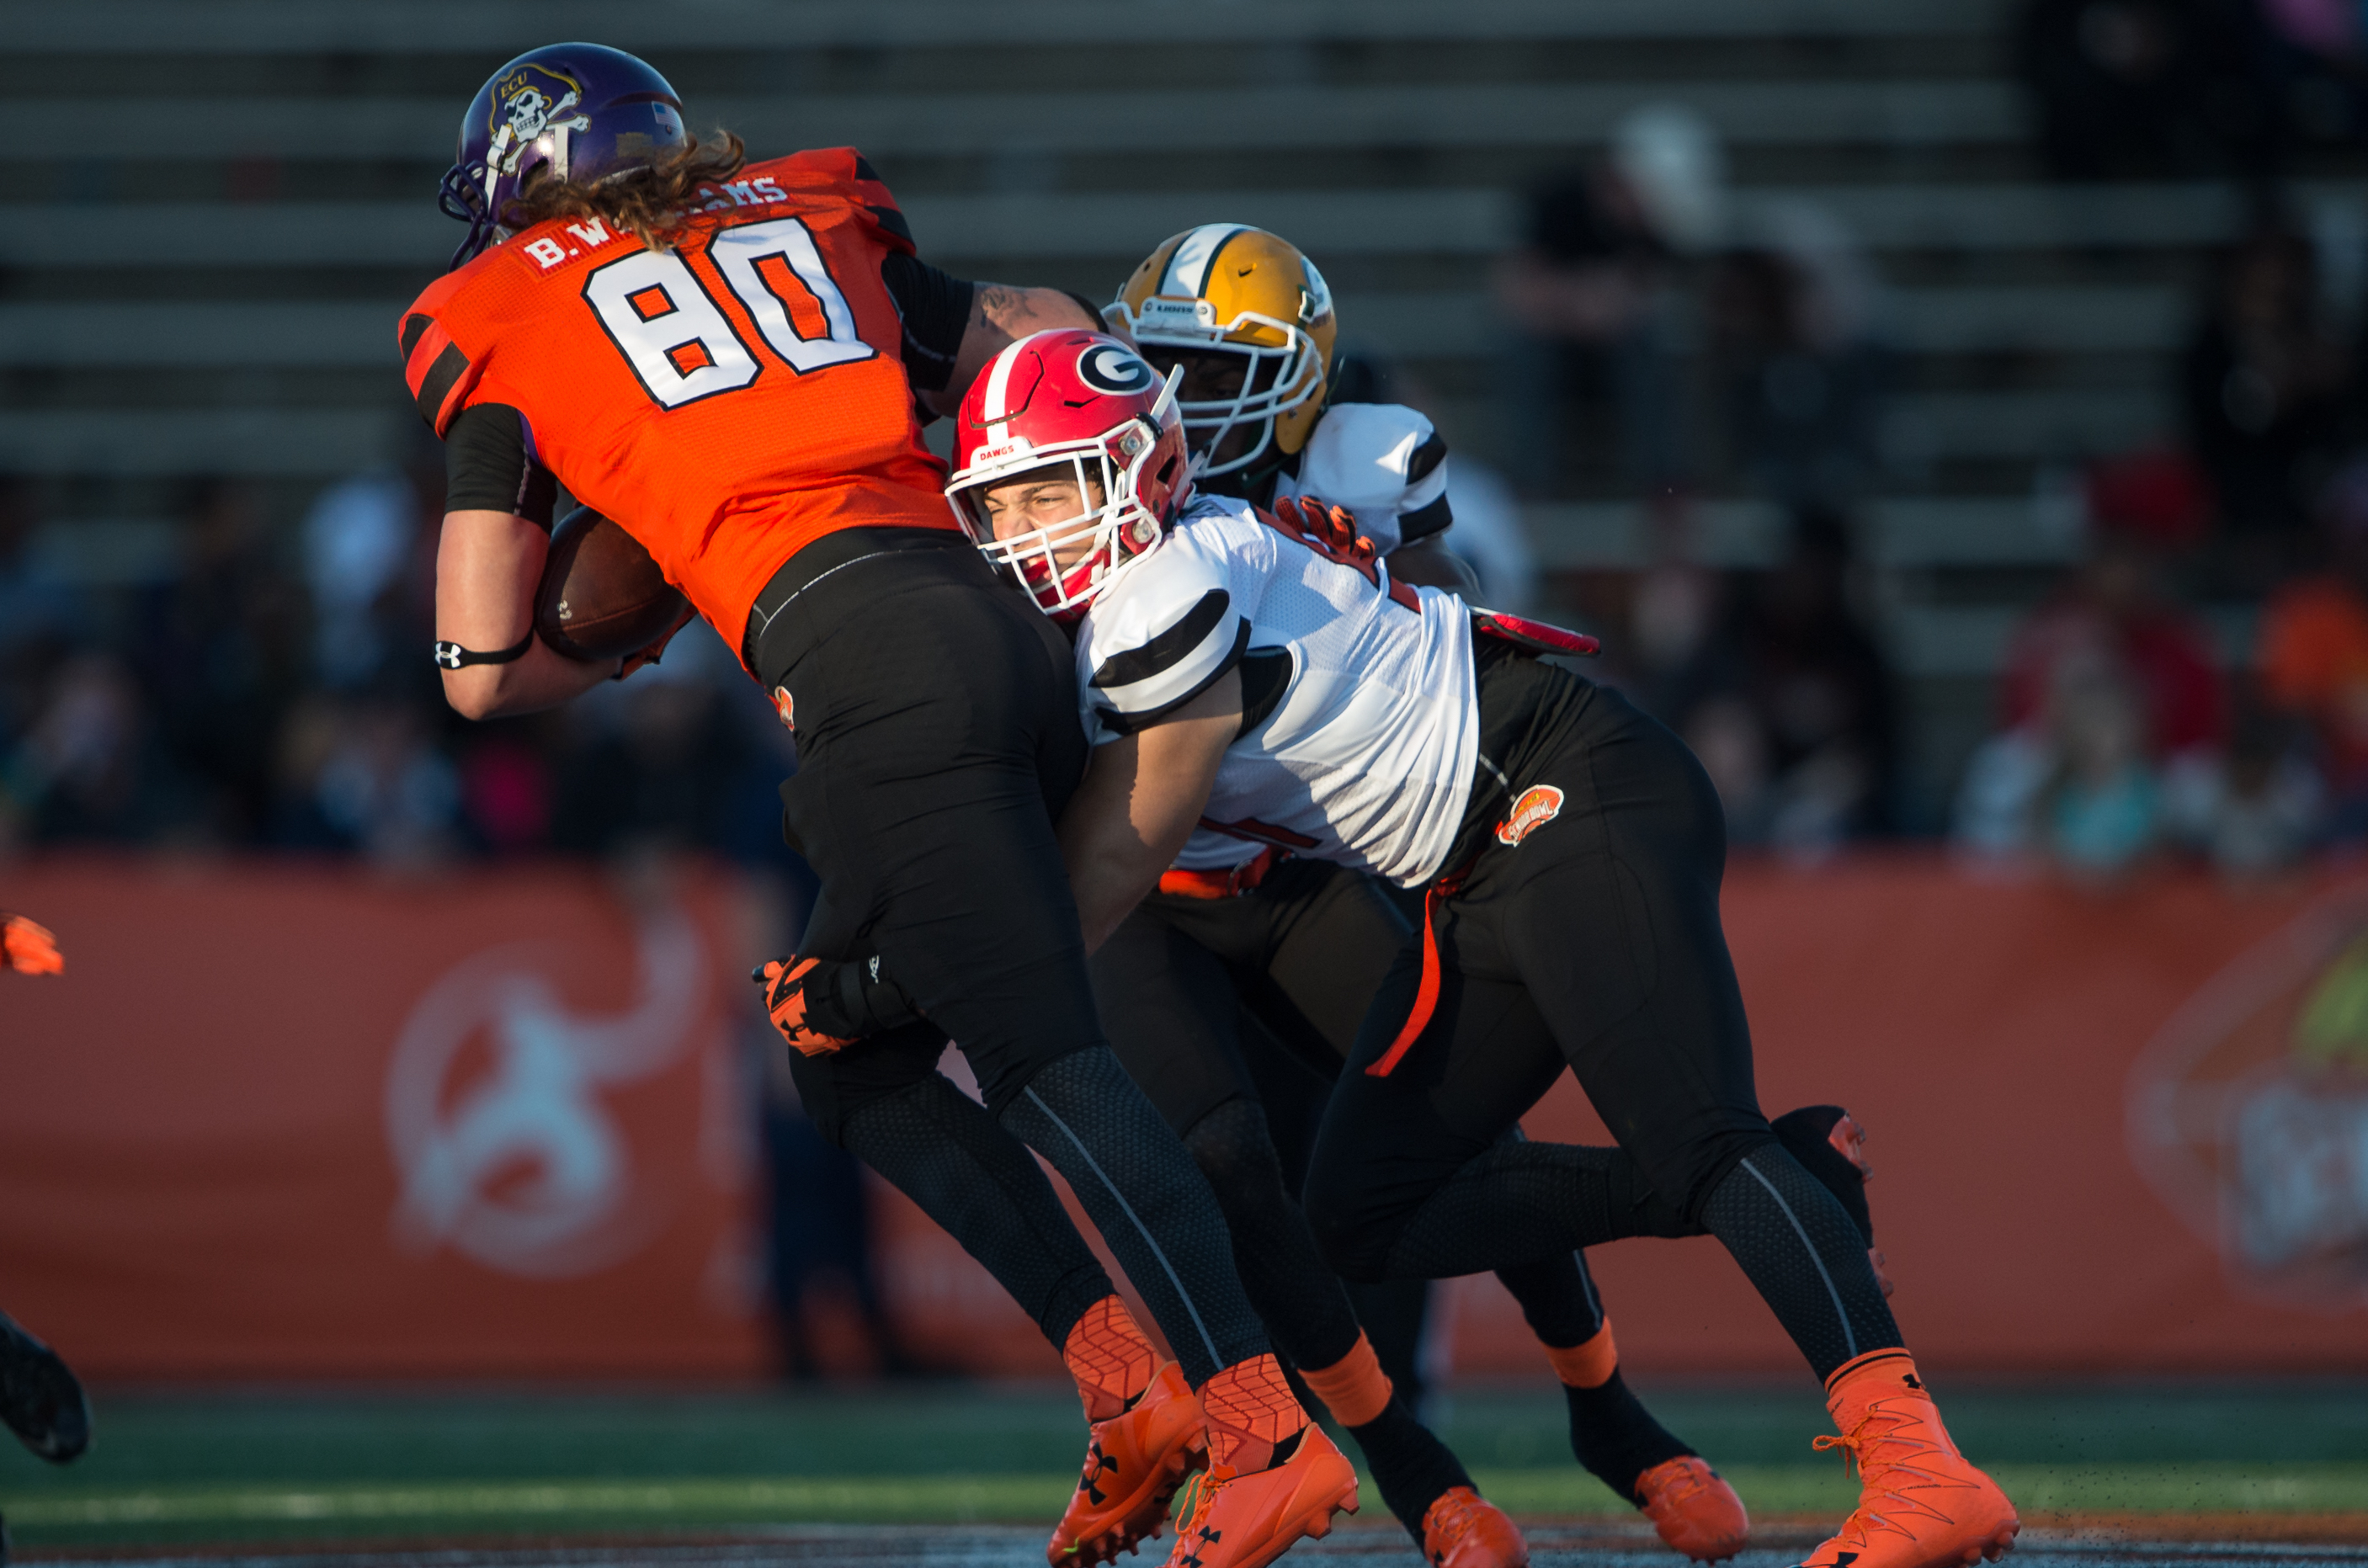 MOBILE, AL - JANUARY 30: South team's inside line backer Jake Ganus #51 with Georgia looks to tackle North team's tightend Bryce Williams #80 with East Carolina on January 30, 2016 at Ladd-Peebles Stadium in Mobile, Alabama. (Photo by Michael Chang/Getty Images)